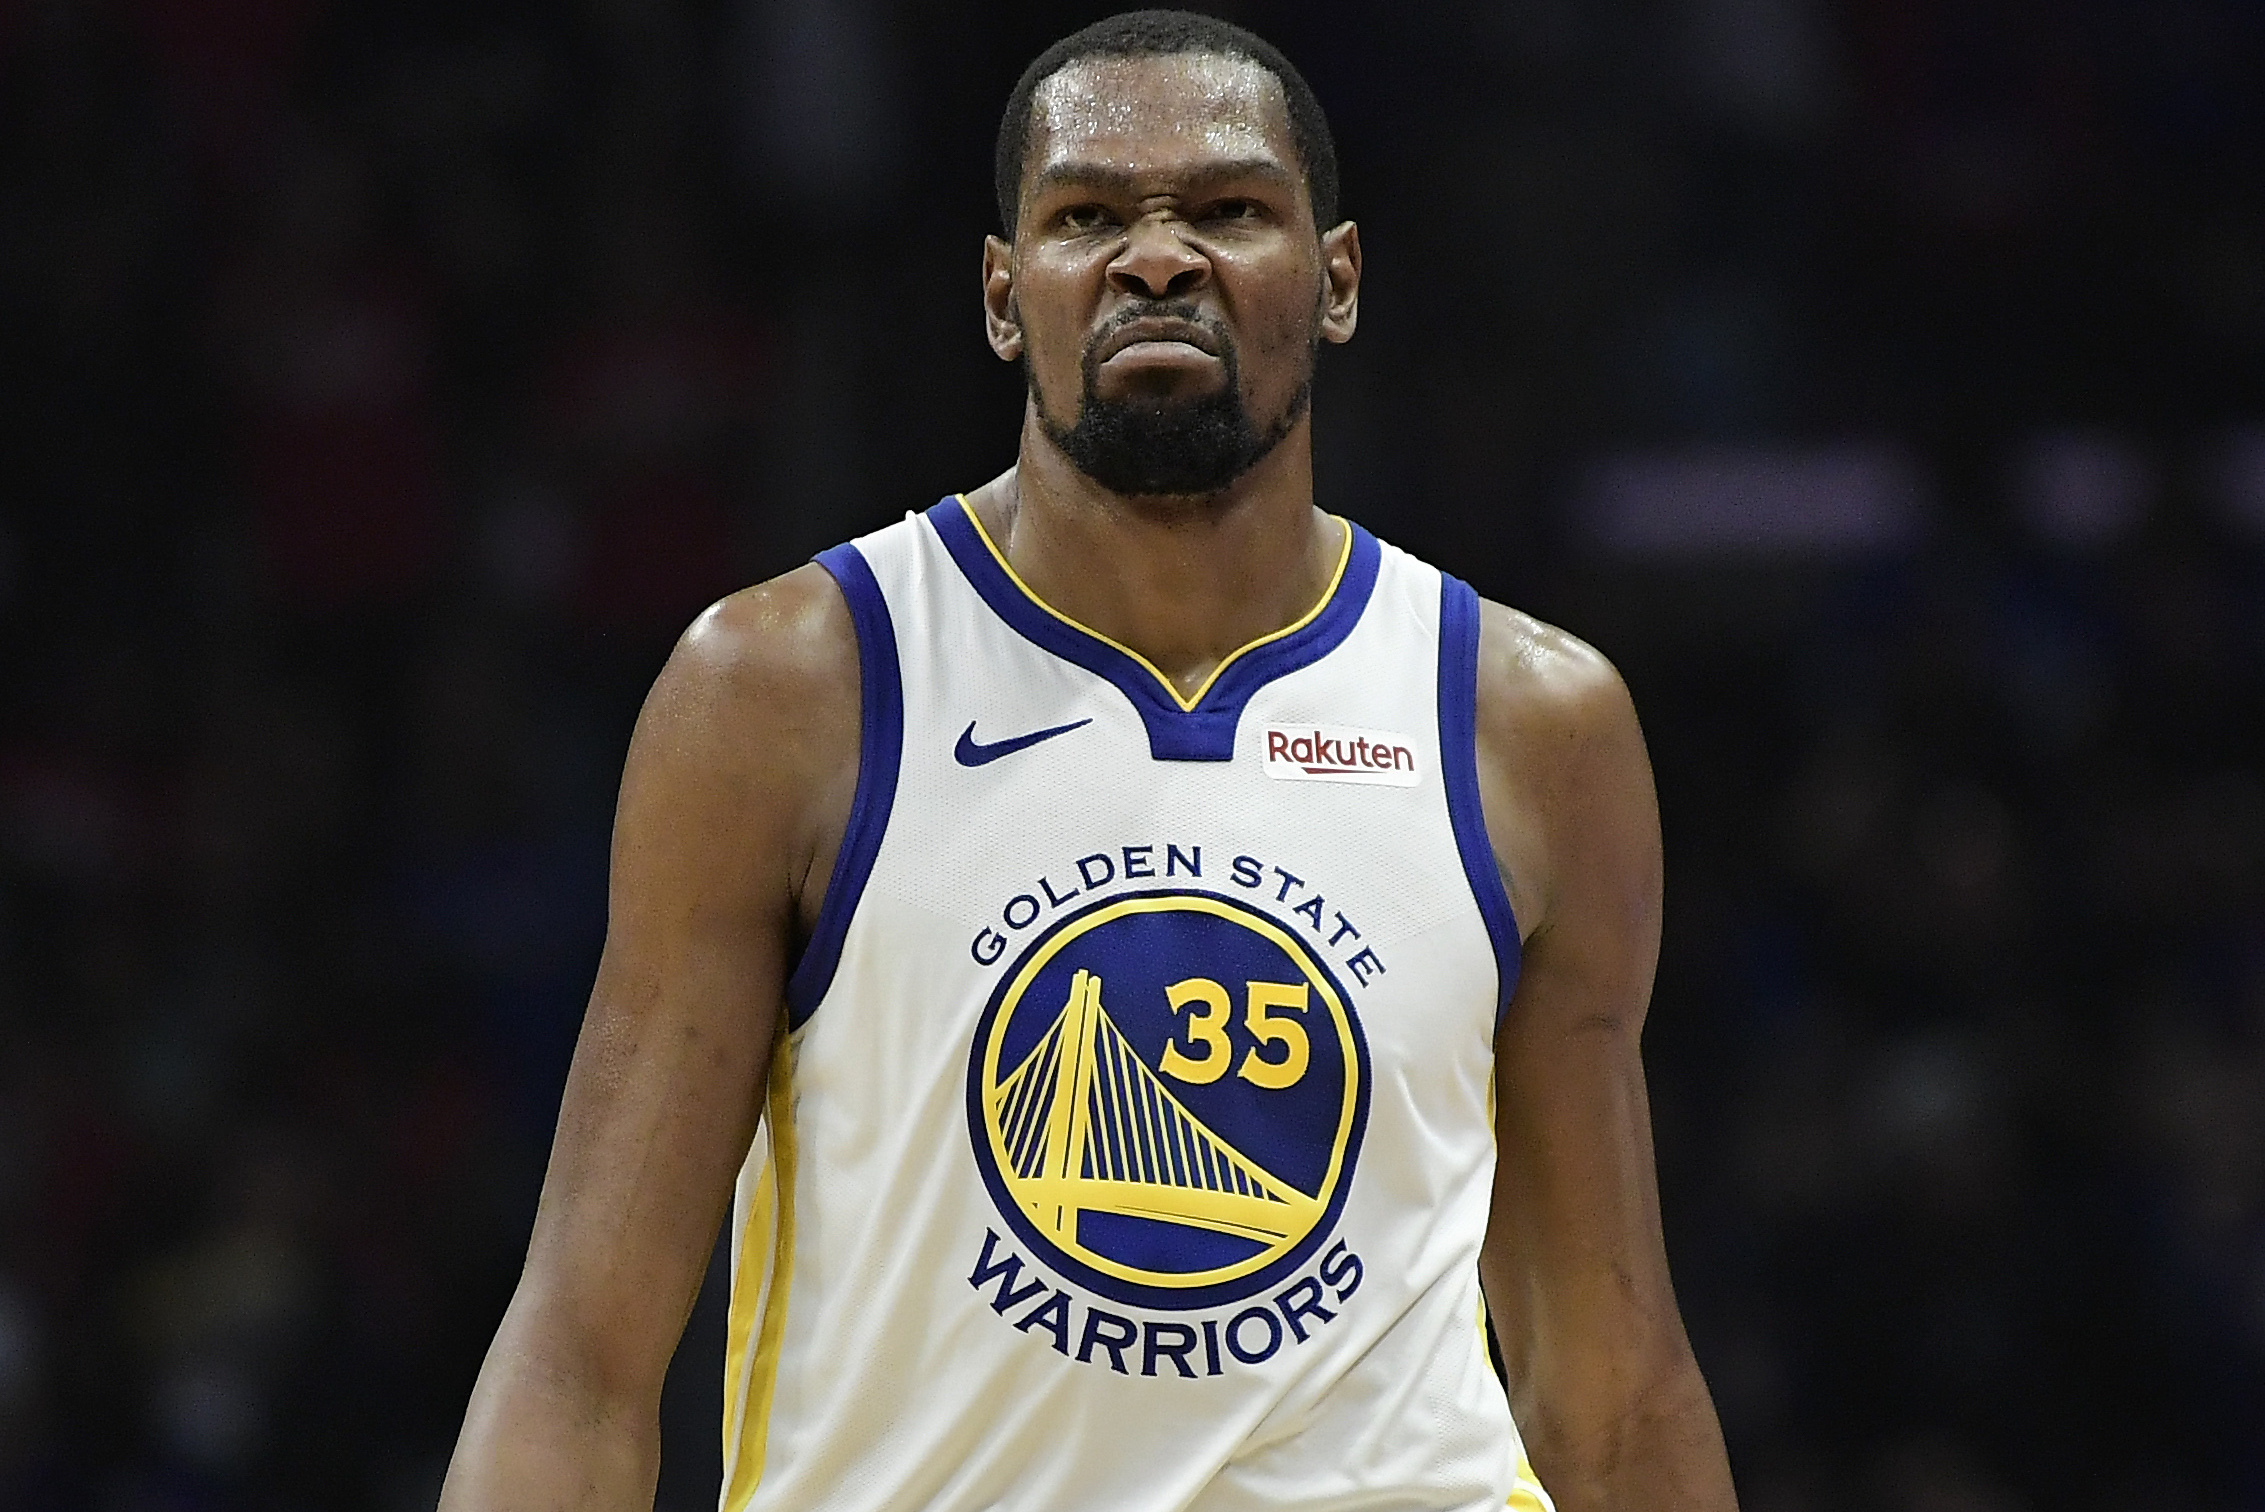 d289c07969f Kevin Durant Rumors   Recent Sense  Star Could Rethink Leaving Warriors in  FA